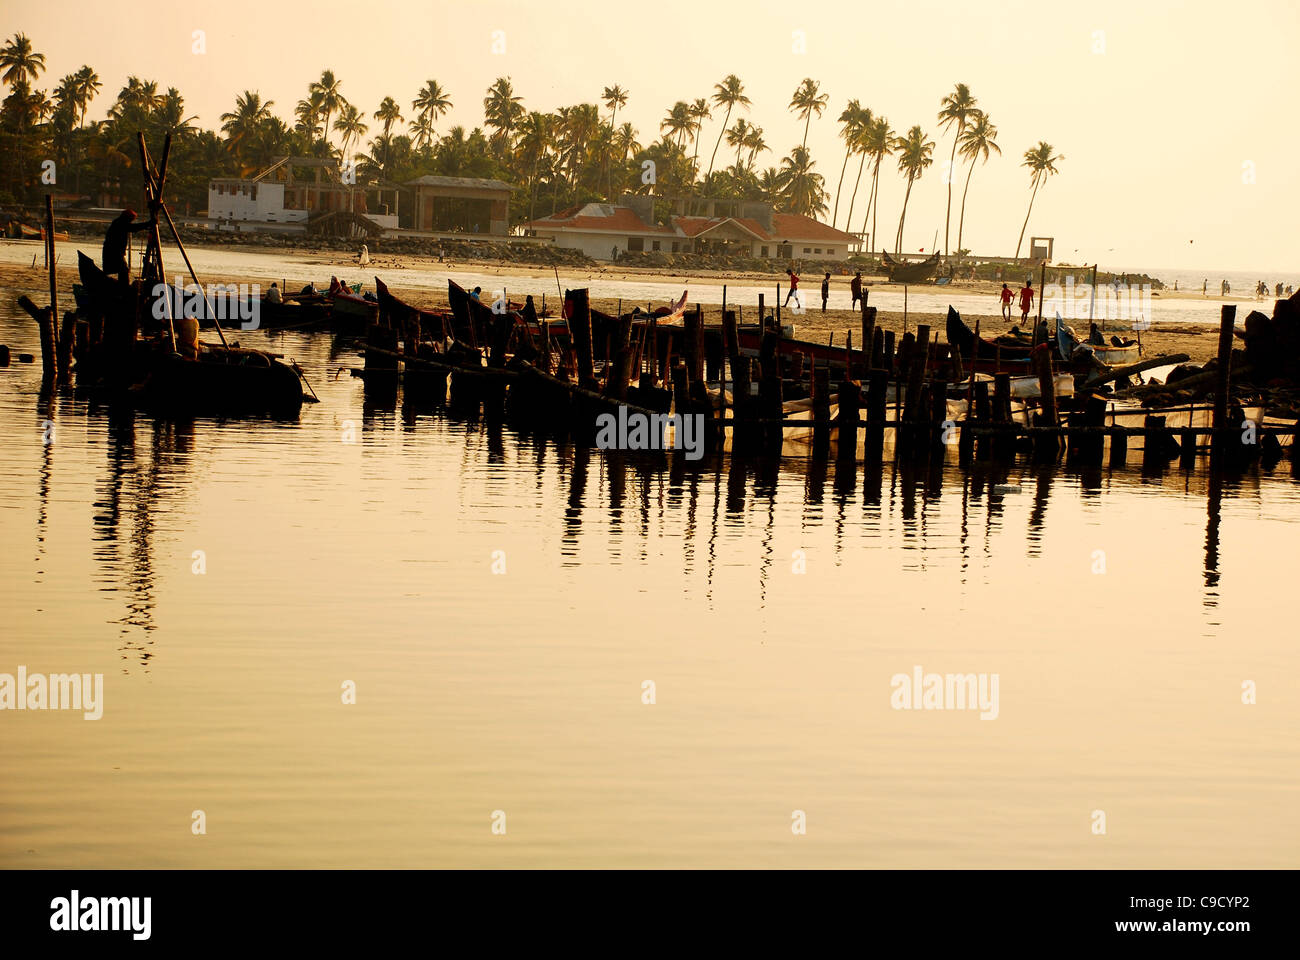 Sunset by a beach in Kerala - Stock Image